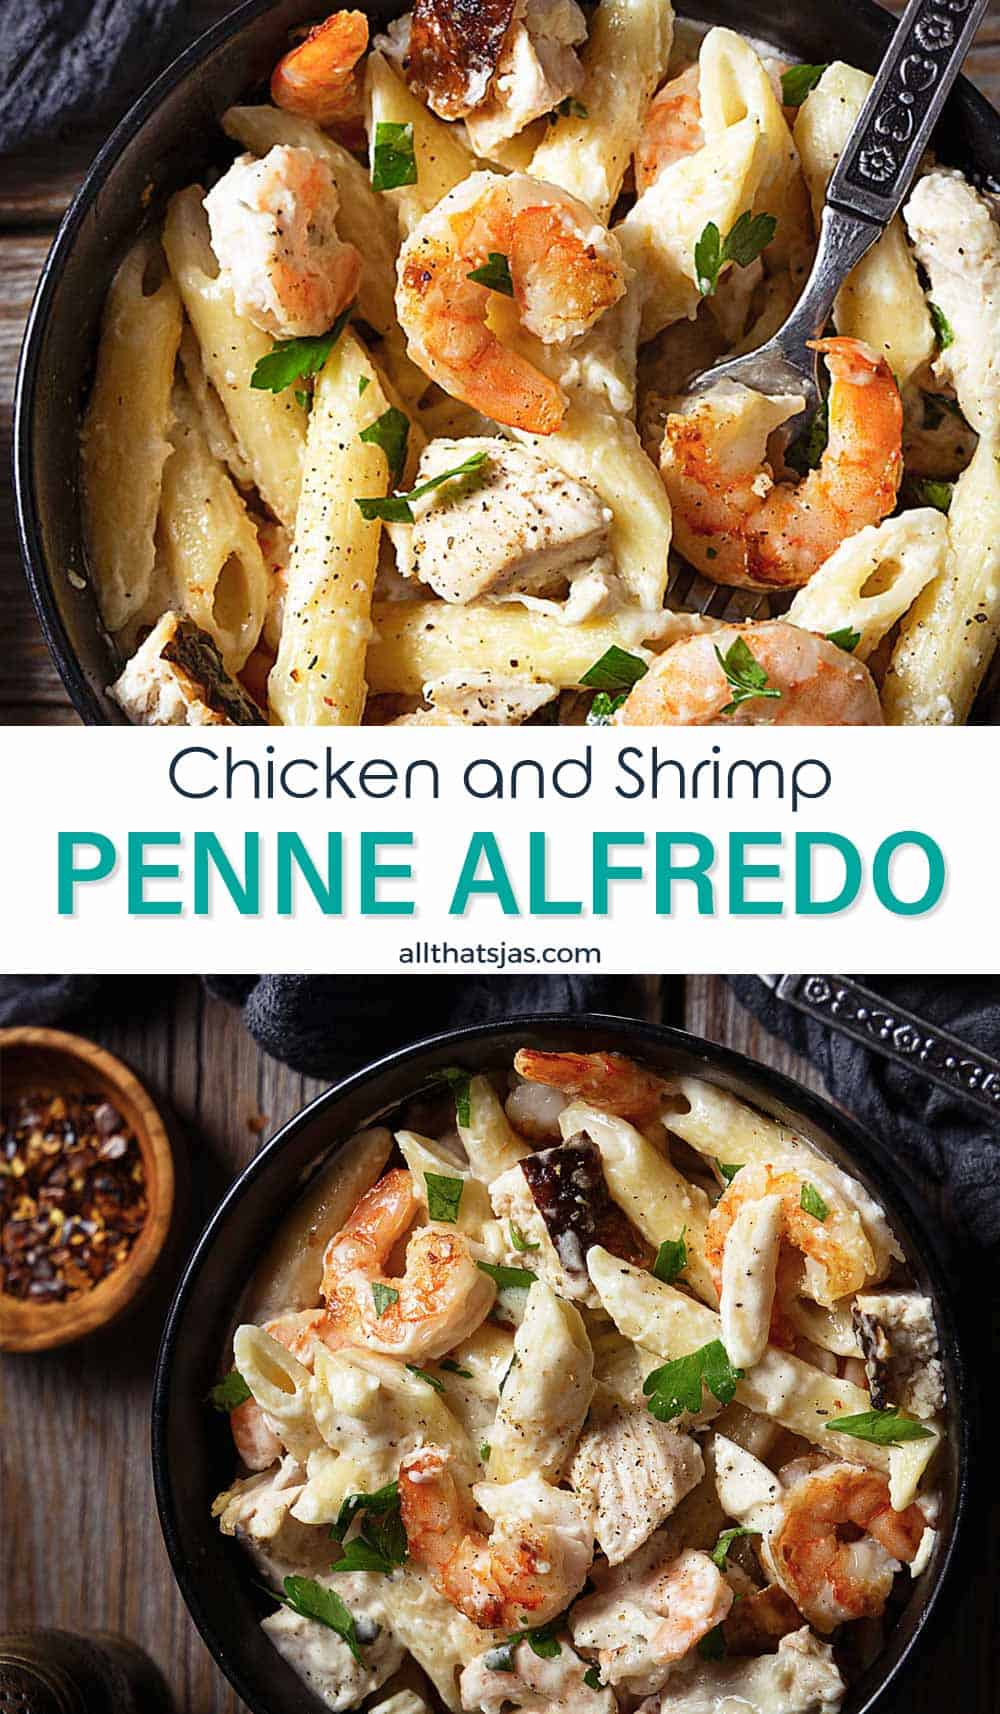 Two photo image with penne in a creamy sauce with protein and text overlay in the middle.